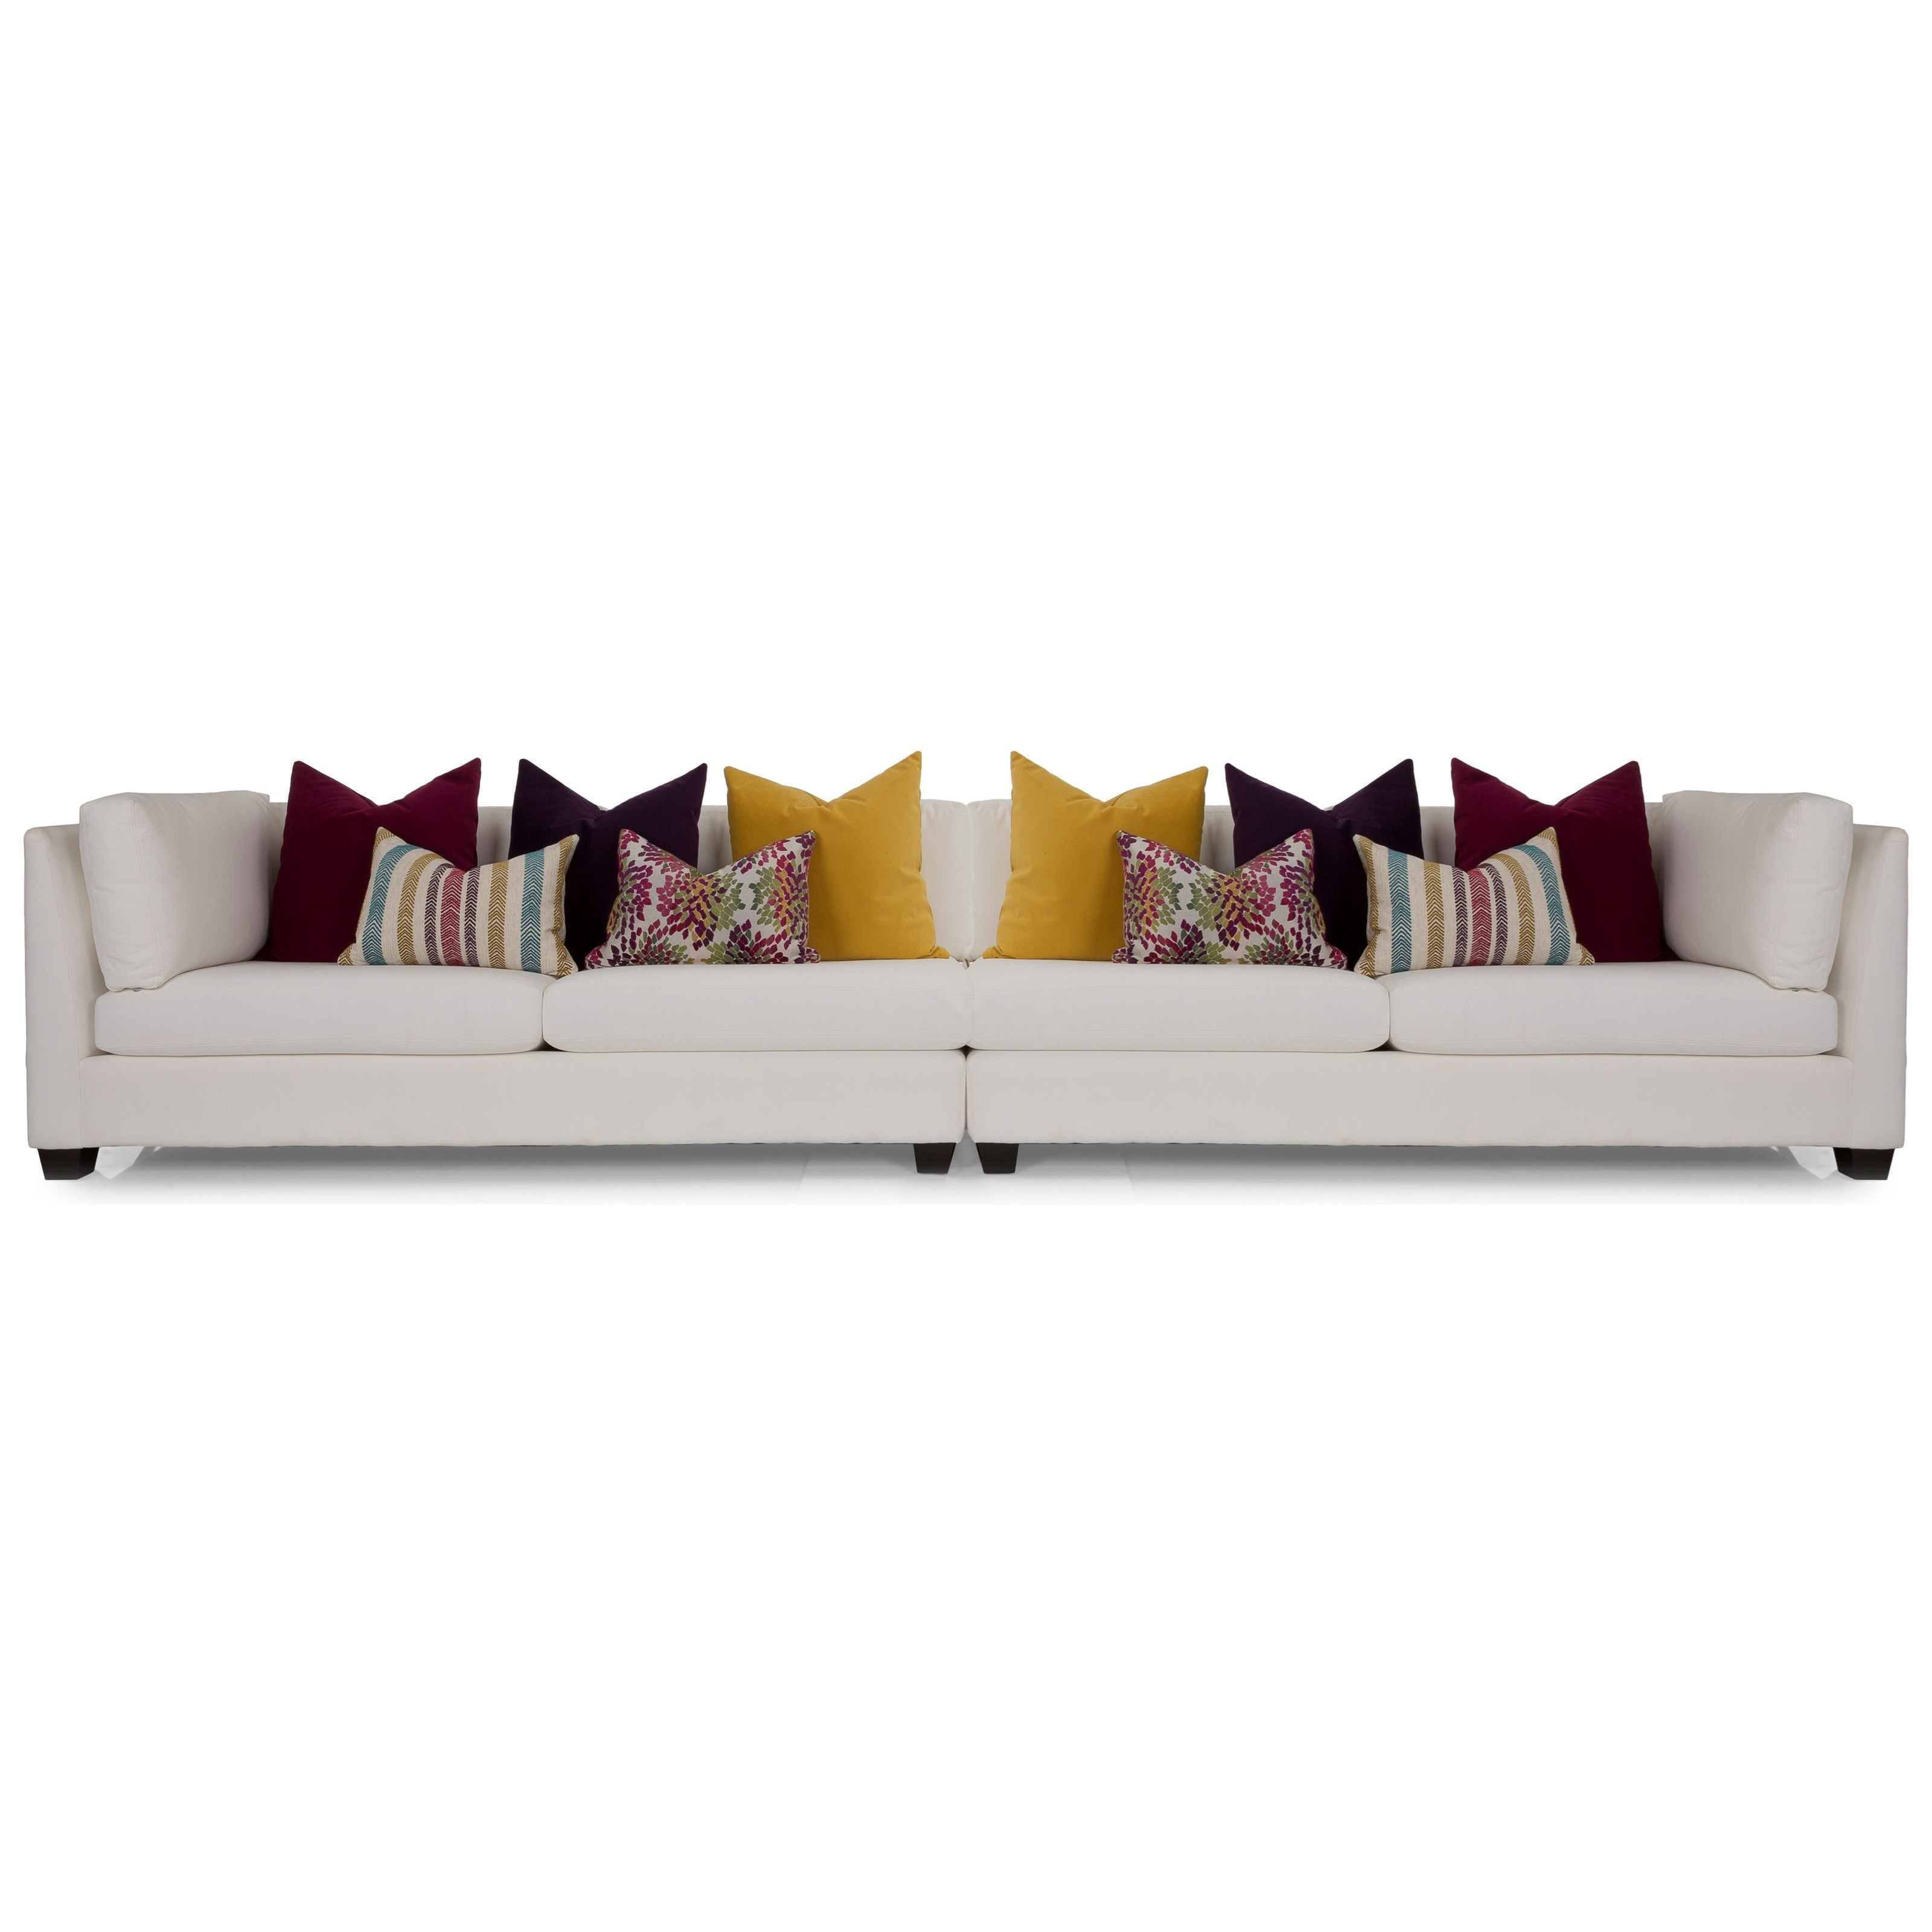 2875 Sectional Sofa by Decor-Rest at Stoney Creek Furniture